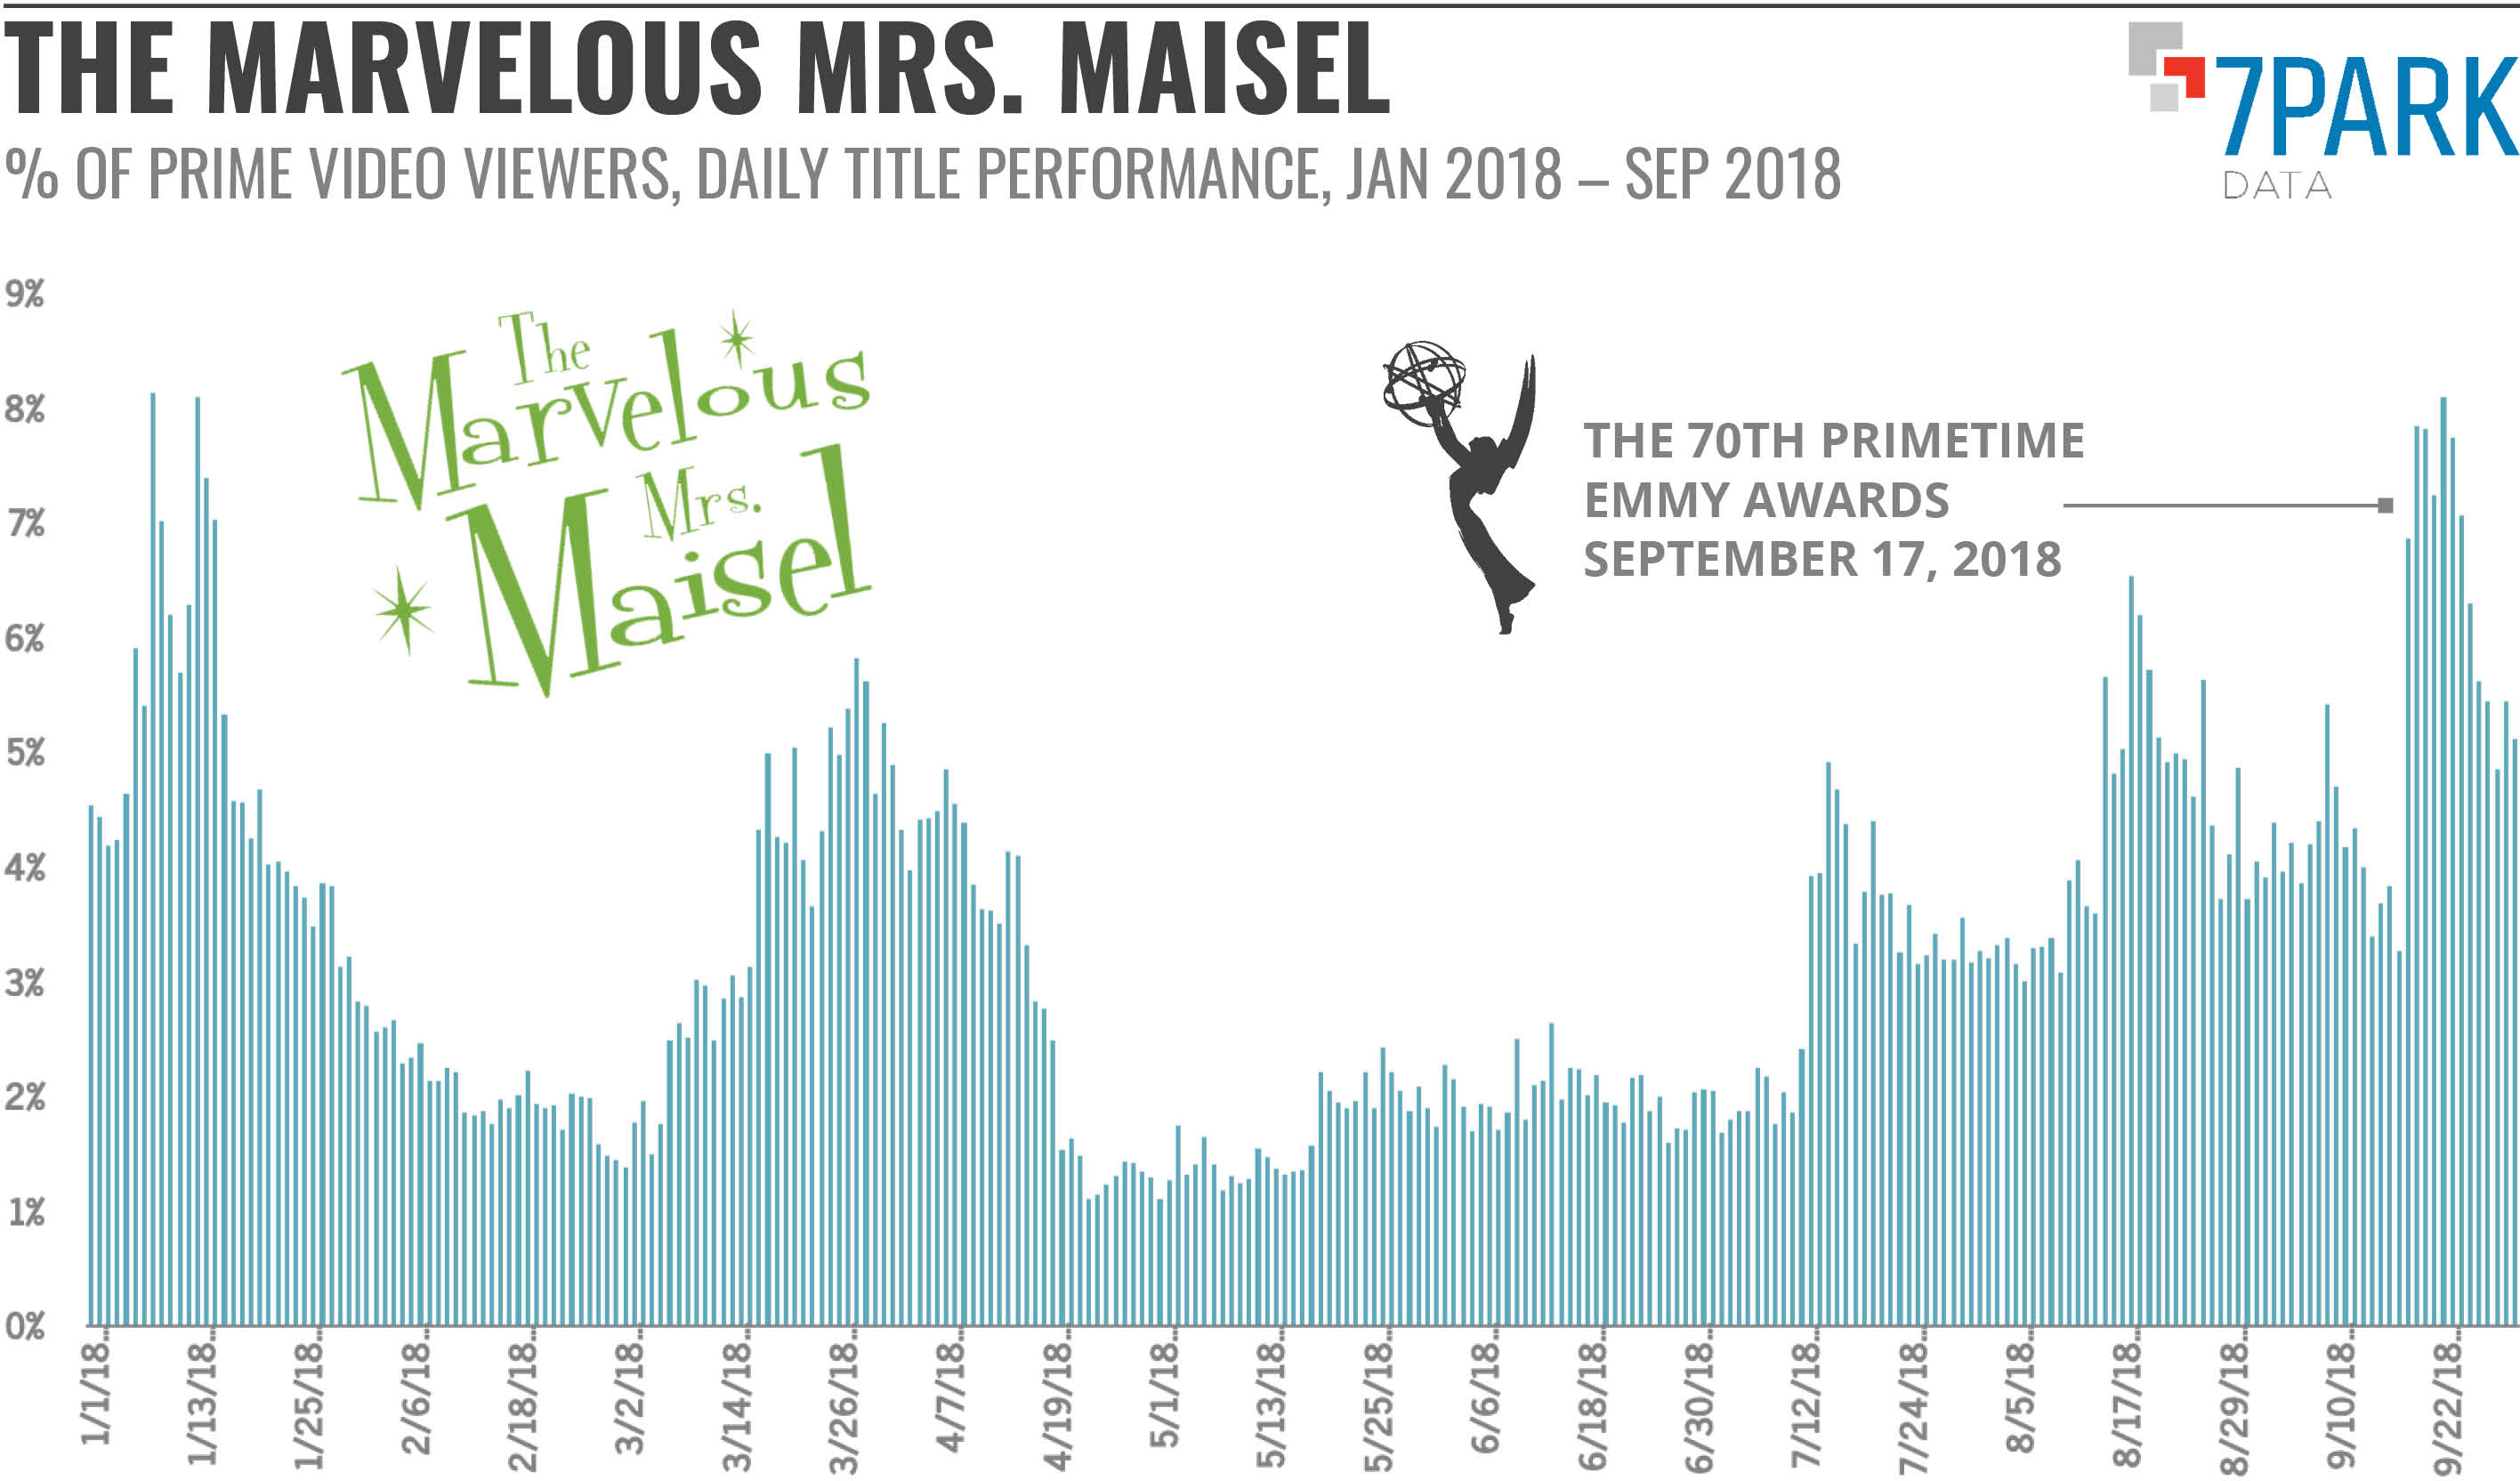 Marvelous Mrs. Maisel Viewership 2018